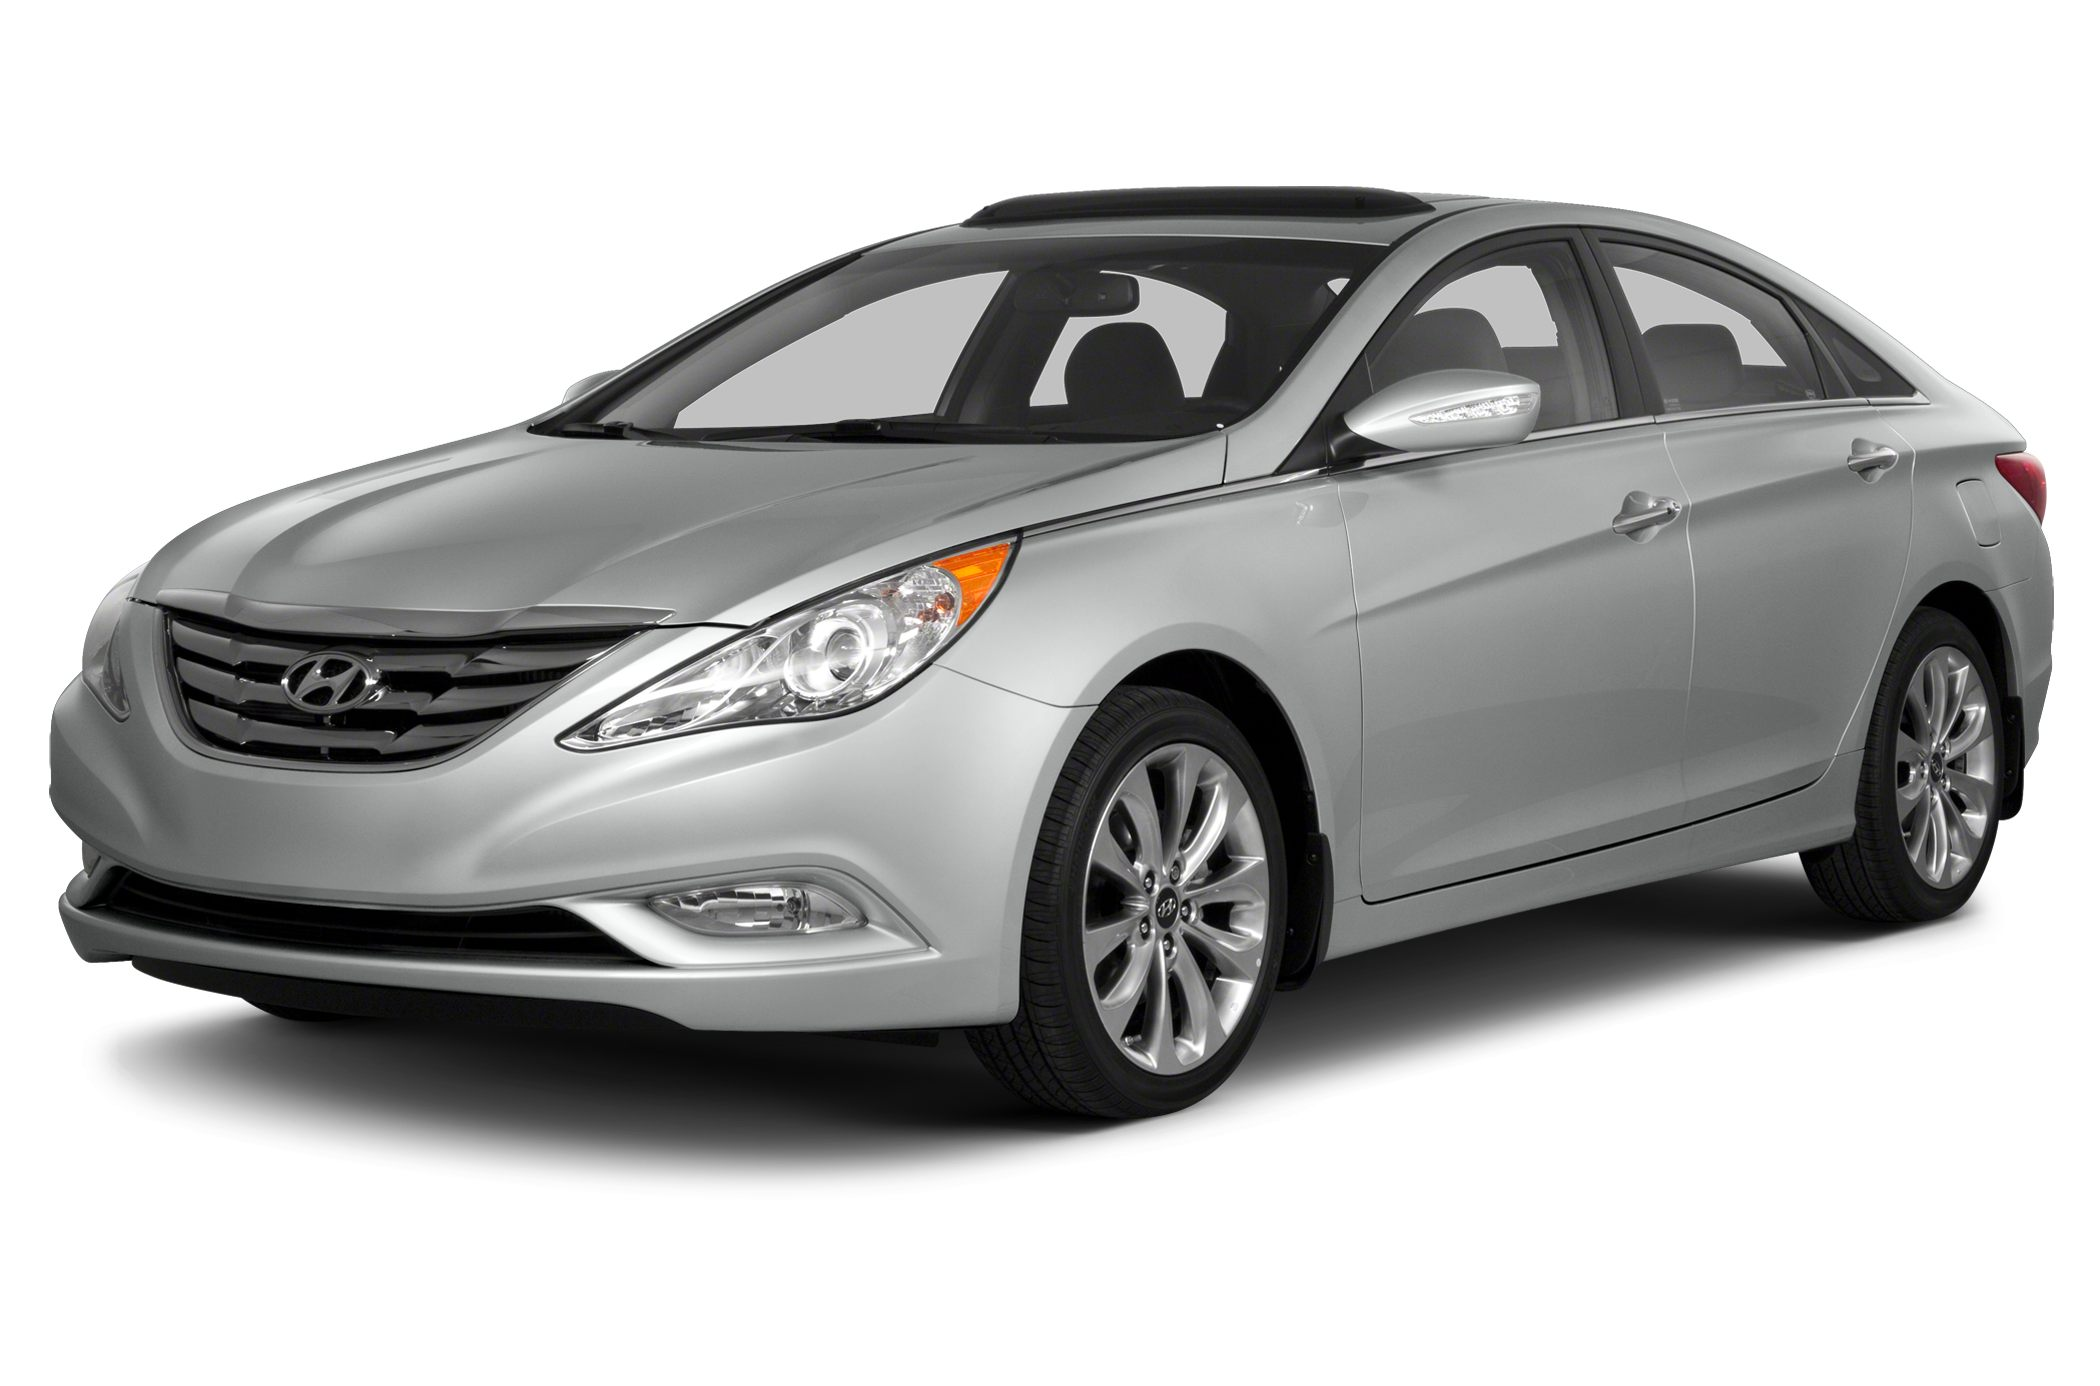 2013 Hyundai Sonata GLS Sedan for sale in Jackson for $14,911 with 61,122 miles